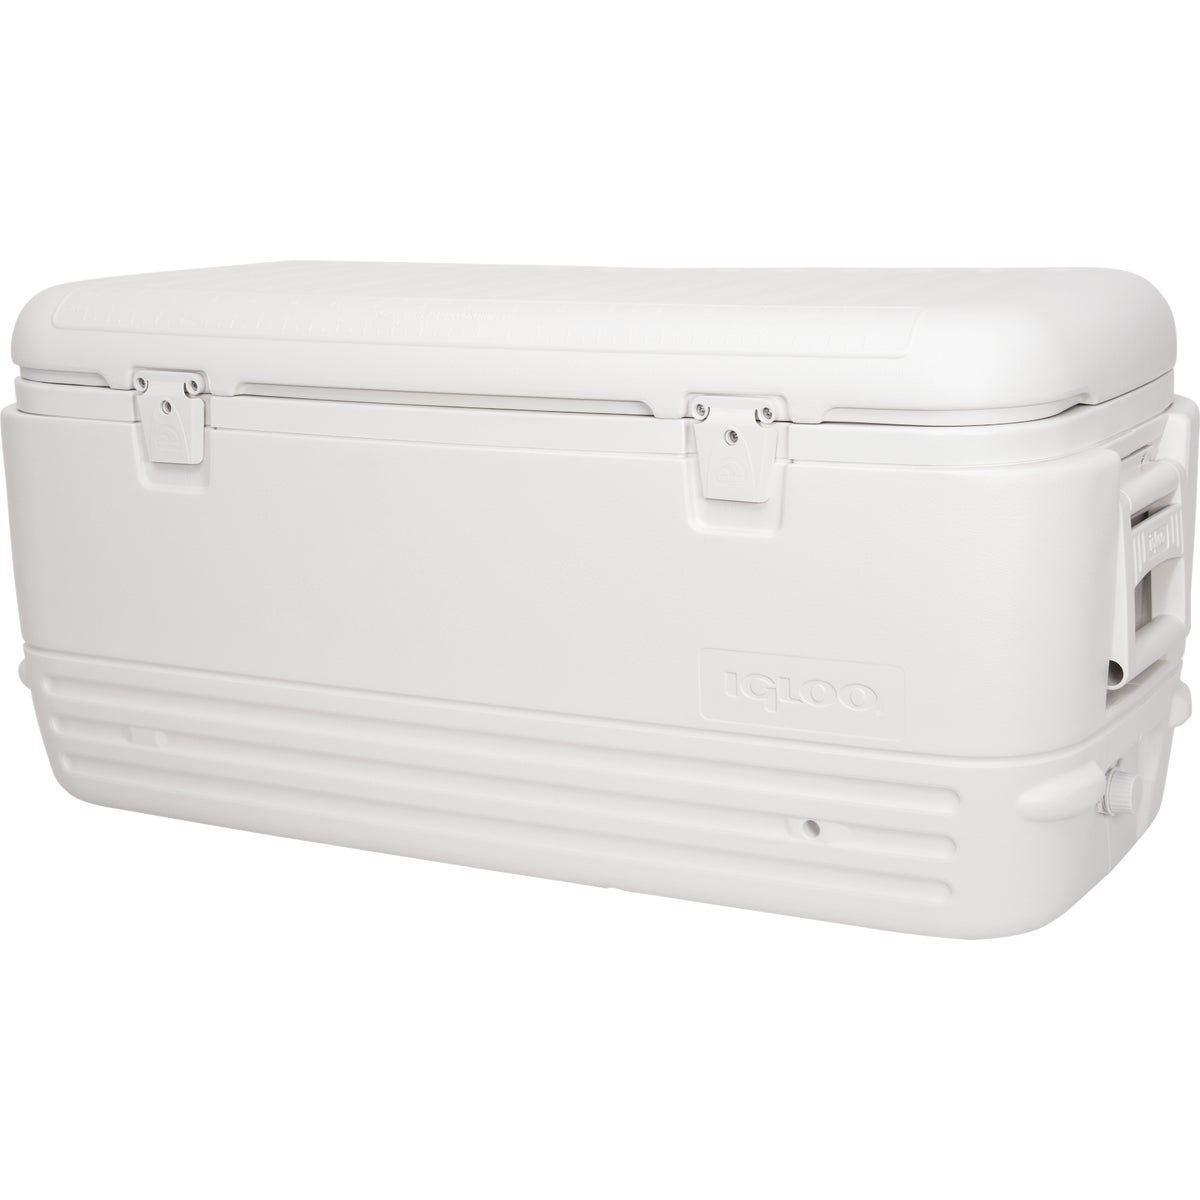 Igloo 100QT BLUE/WHITE COOLER 11442